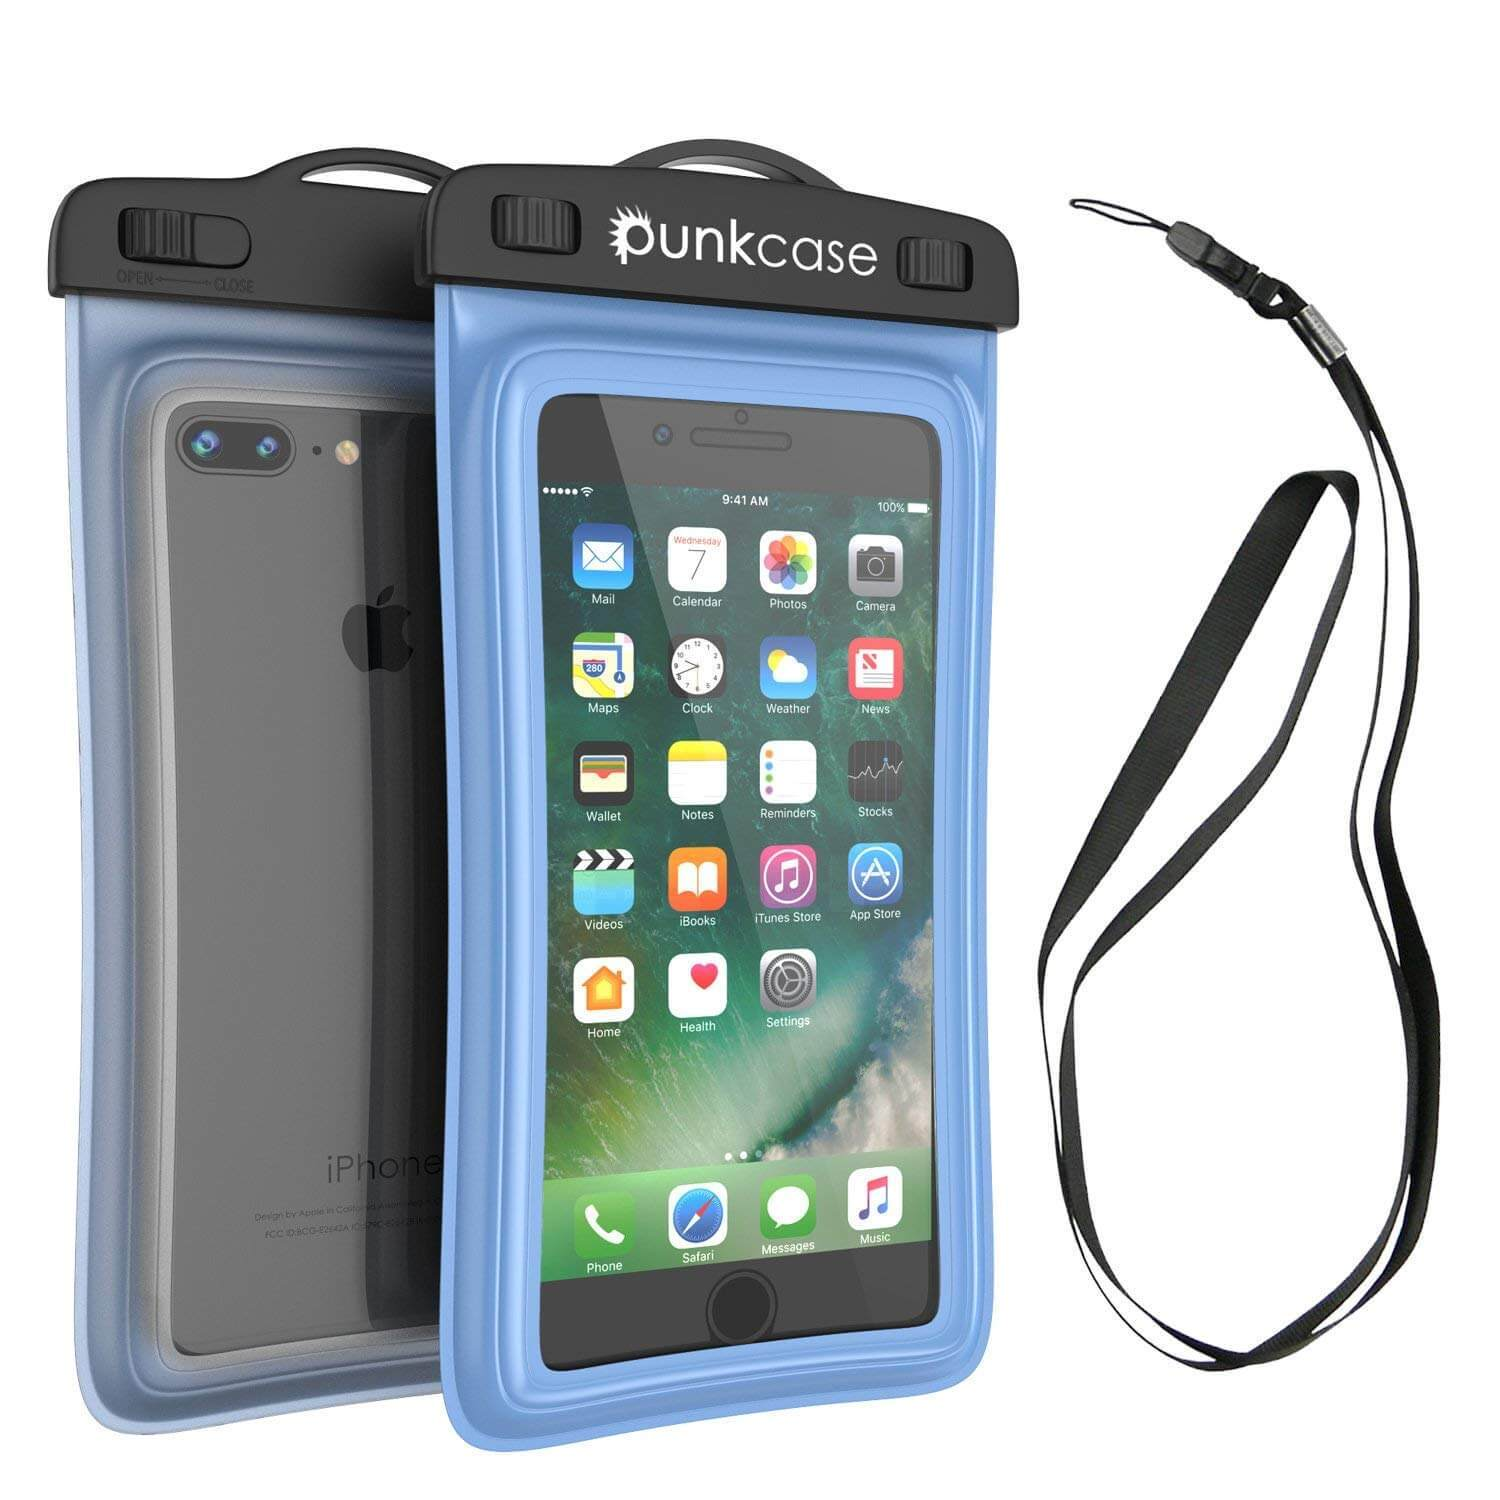 Waterproof Phone Pouch, PunkBag Universal Floating Dry Case Bag for most Cell Phones [Blue]